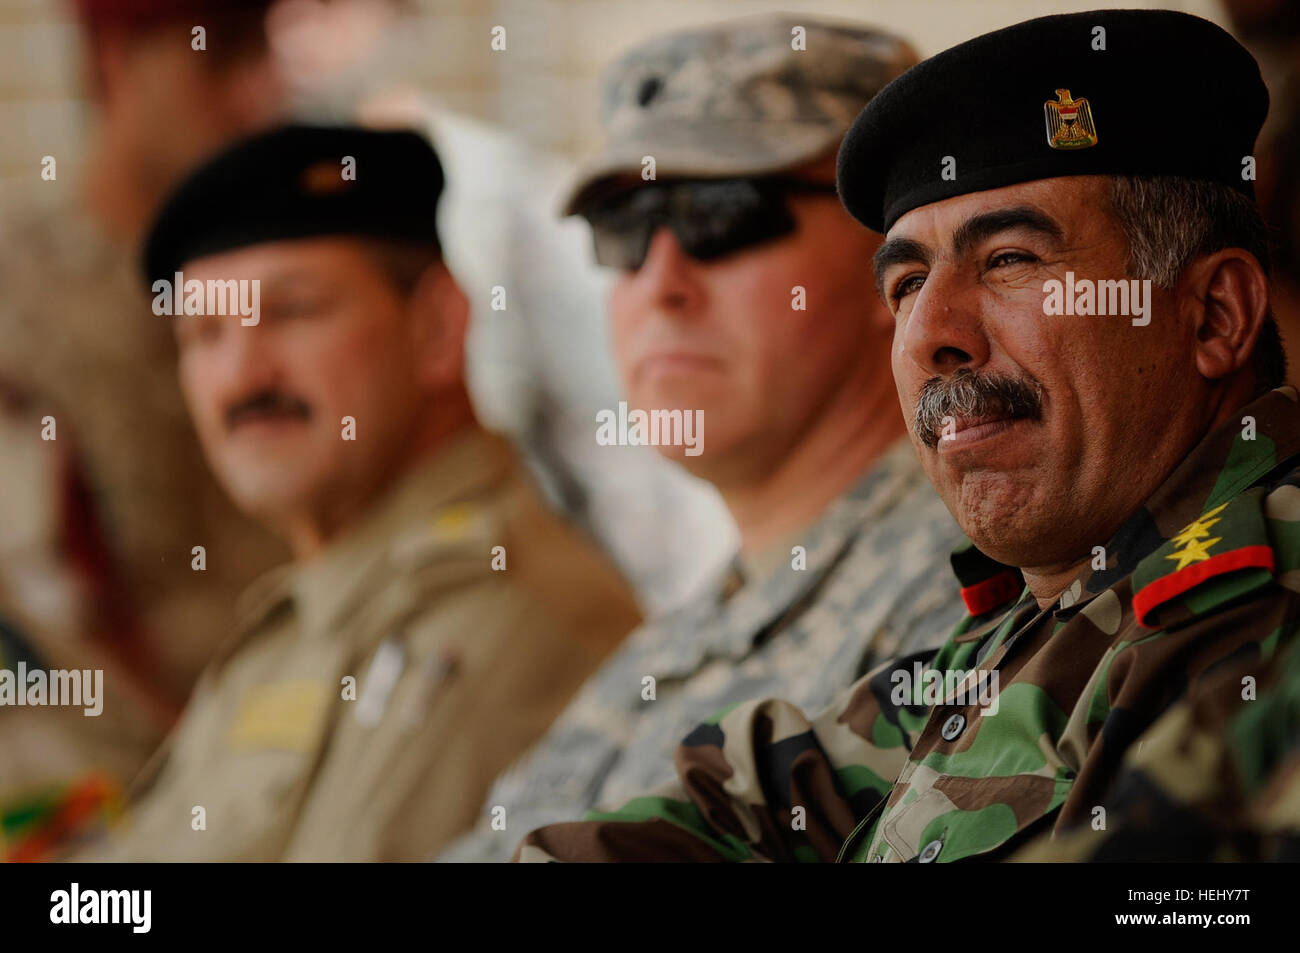 2nd Iraqi Army Division Stockfotos & 2nd Iraqi Army Division Bilder ...